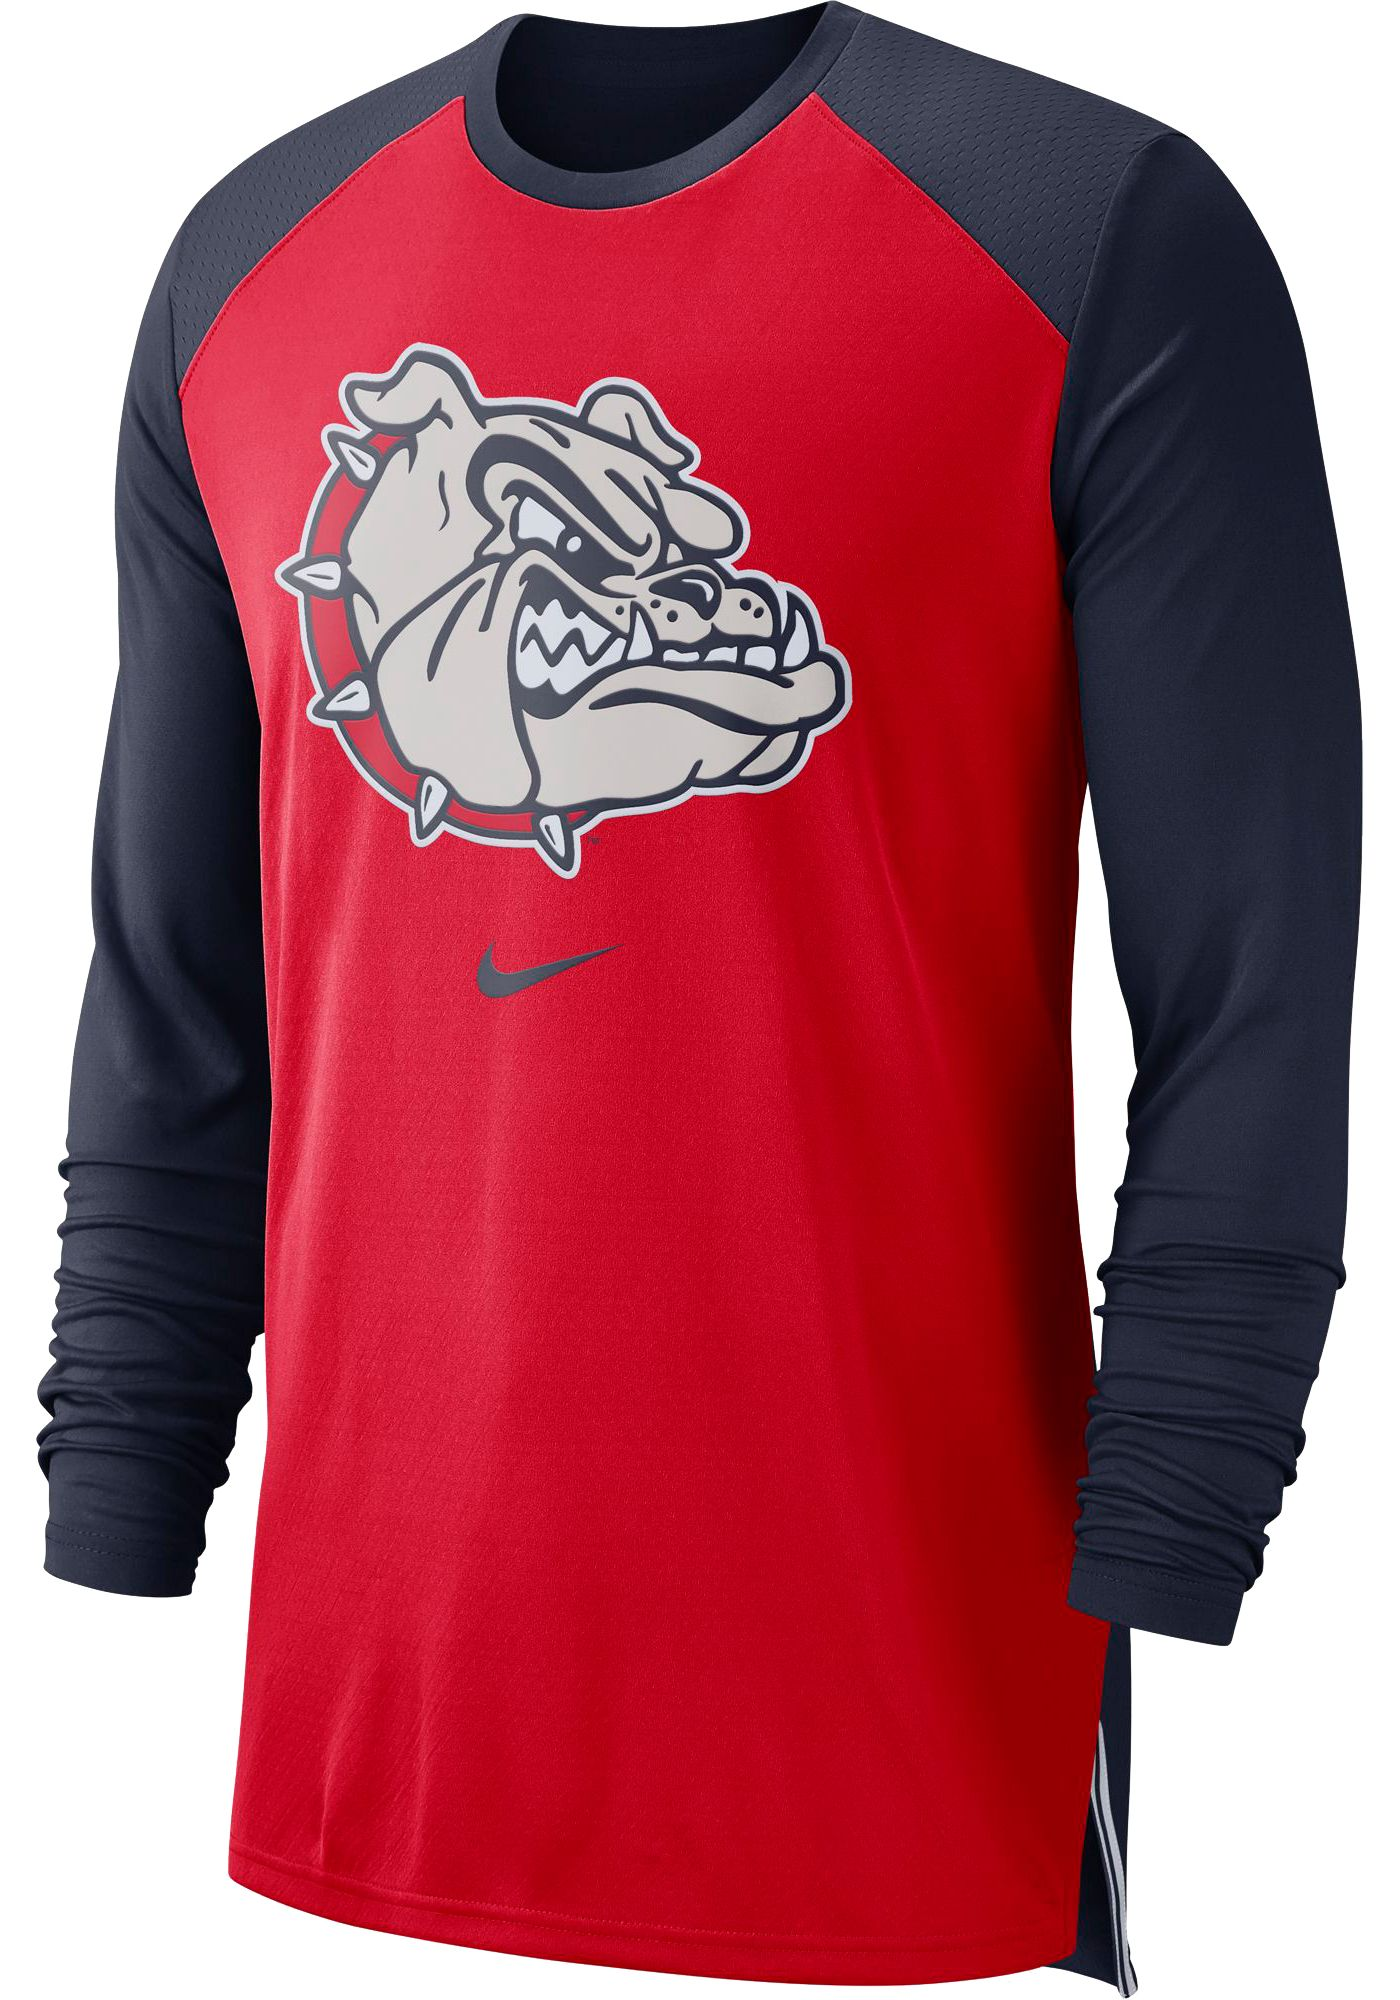 Nike Men's Gonzaga Bulldogs Red/Blue Long Sleeve Shooting Shirt